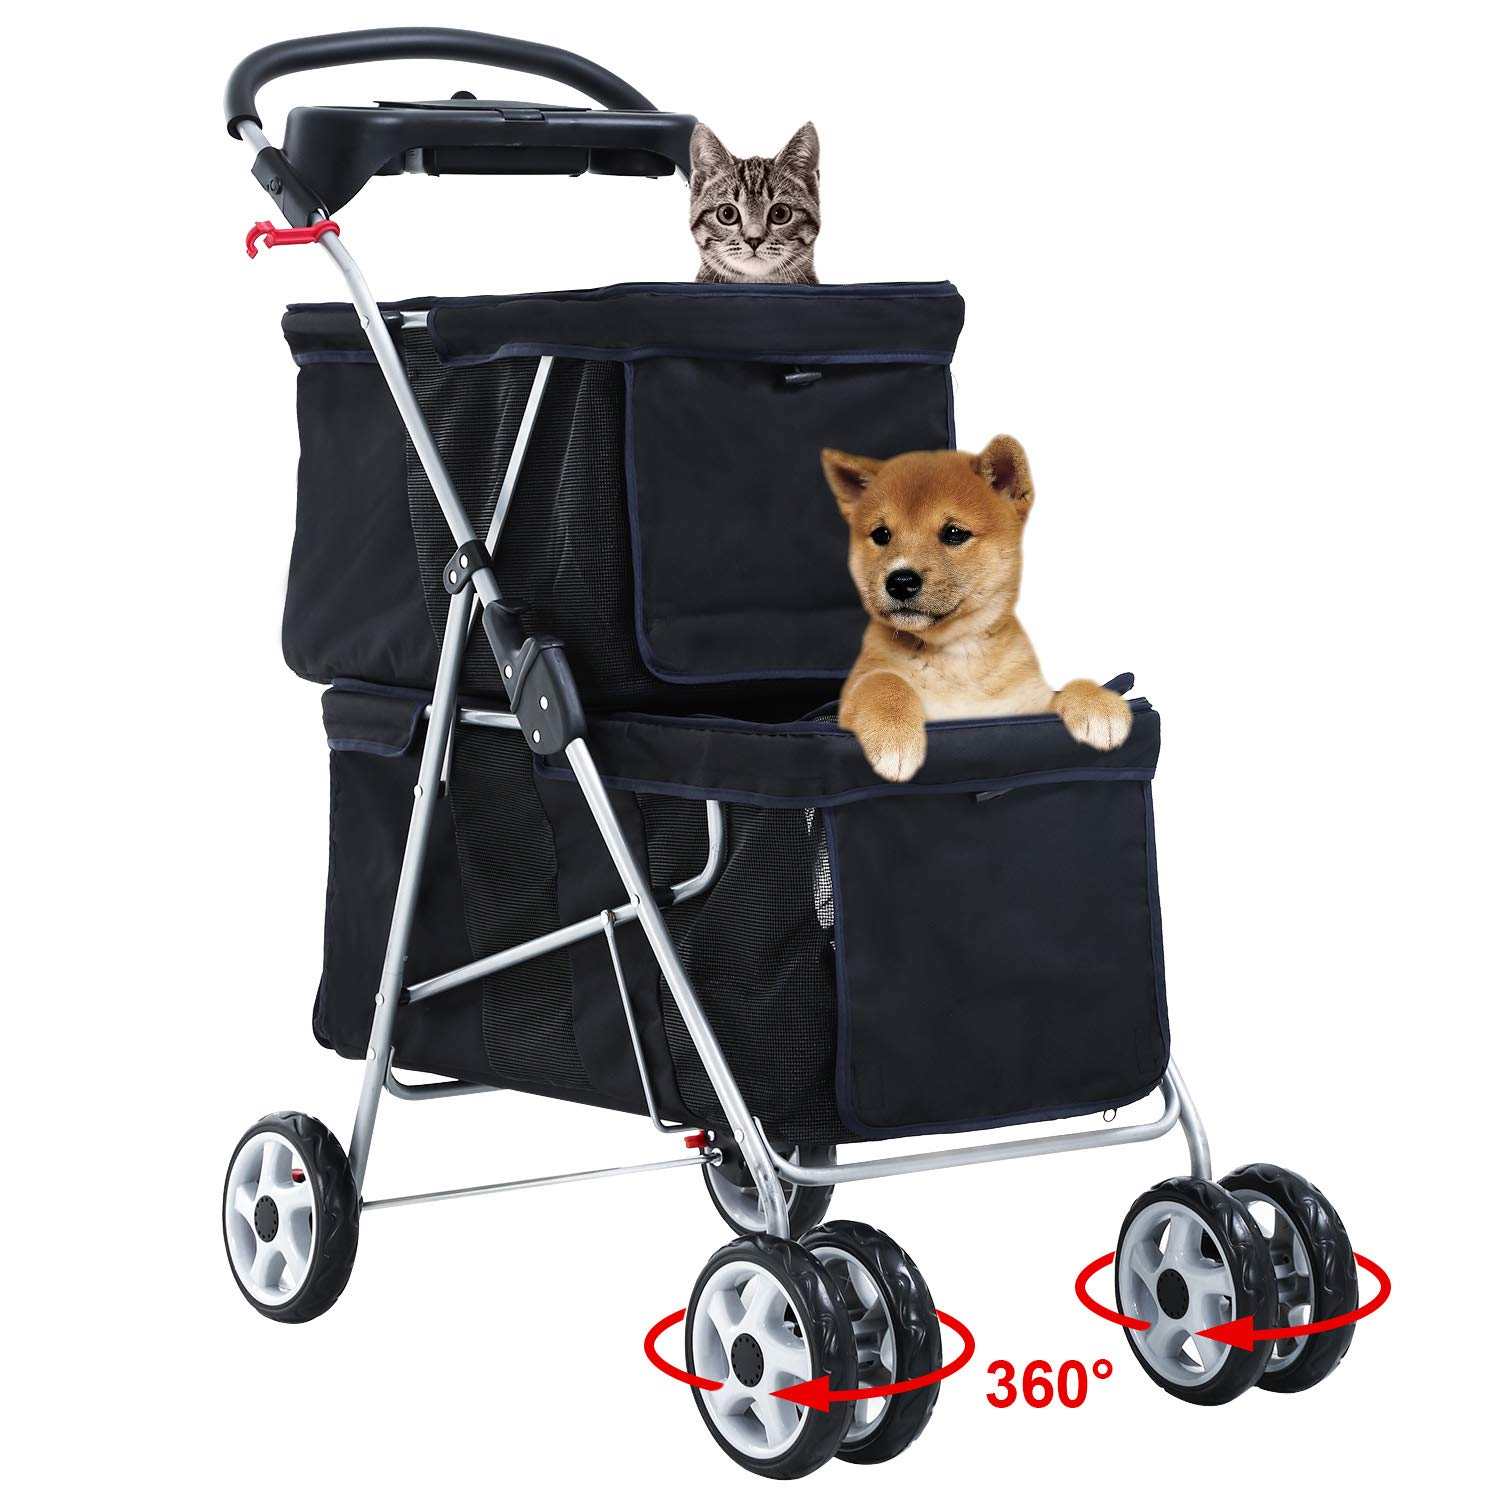 Pet Stroller Dog Cat Stroller Aluminum Frame Mesh Ventilation Travel Camping Folding Lightweight 4 Swivel Wheels Puppy Jogger Stroller Carrier Cart With Cup Holder,Black